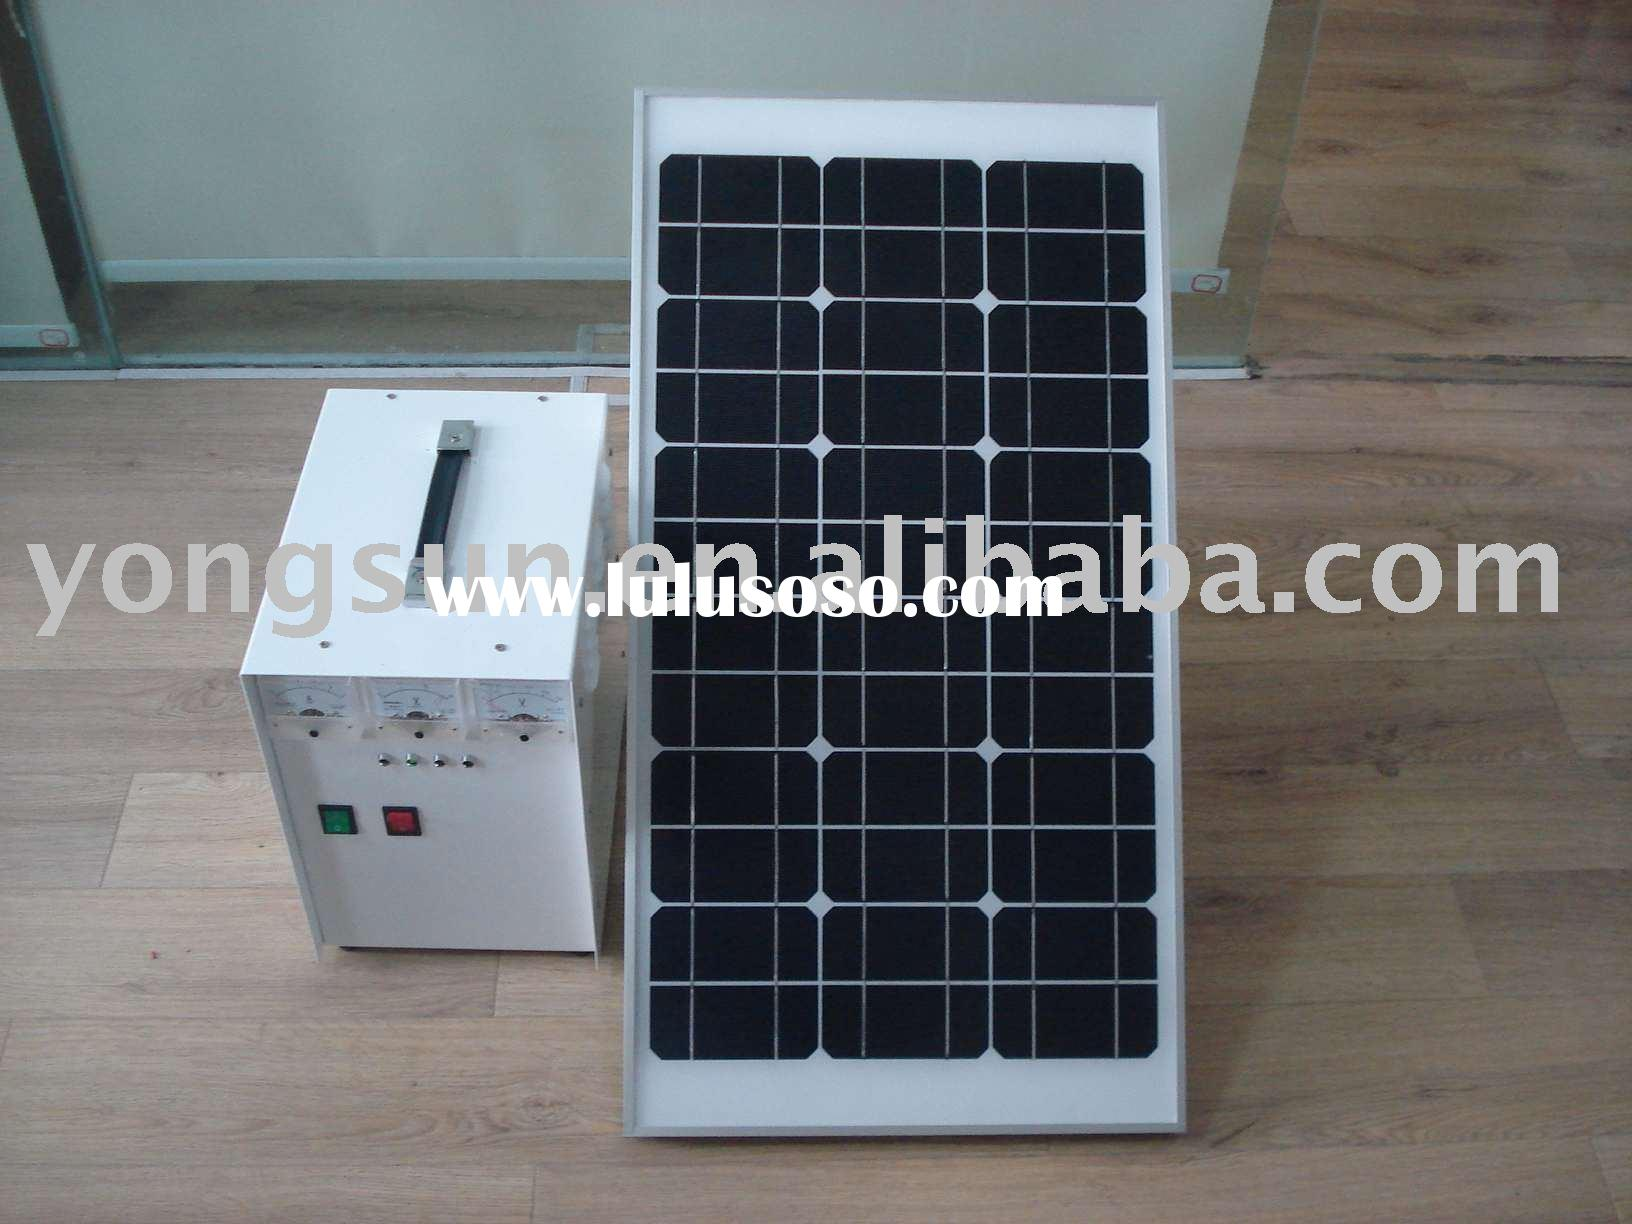 Portable Solar Power Kits